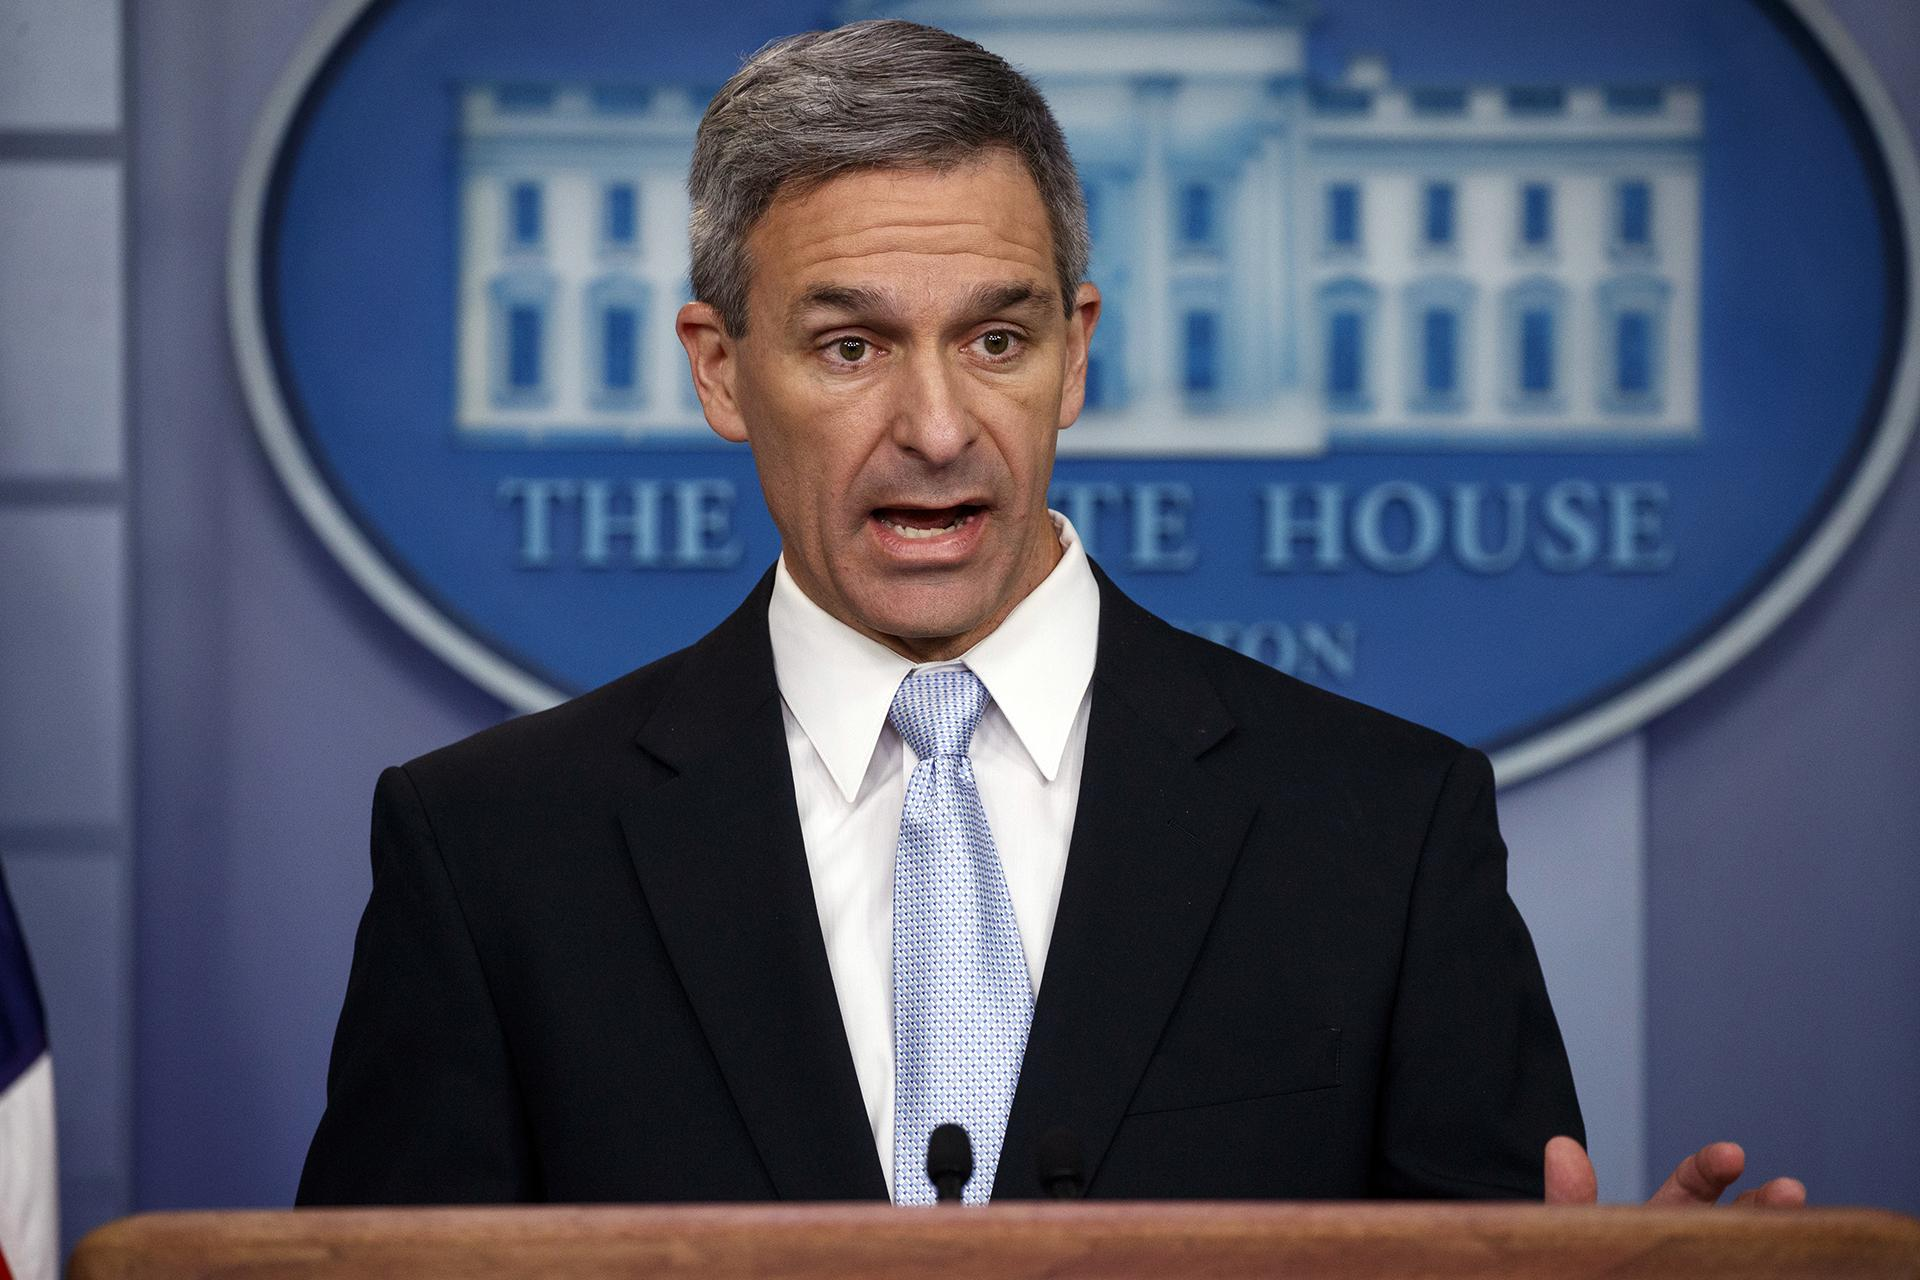 Acting Director of United States Citizenship and Immigration Services Ken Cuccinelli, speaks during a briefing at the White House, Monday, Aug. 12, 2019, in Washington. (AP Photo / Evan Vucci)